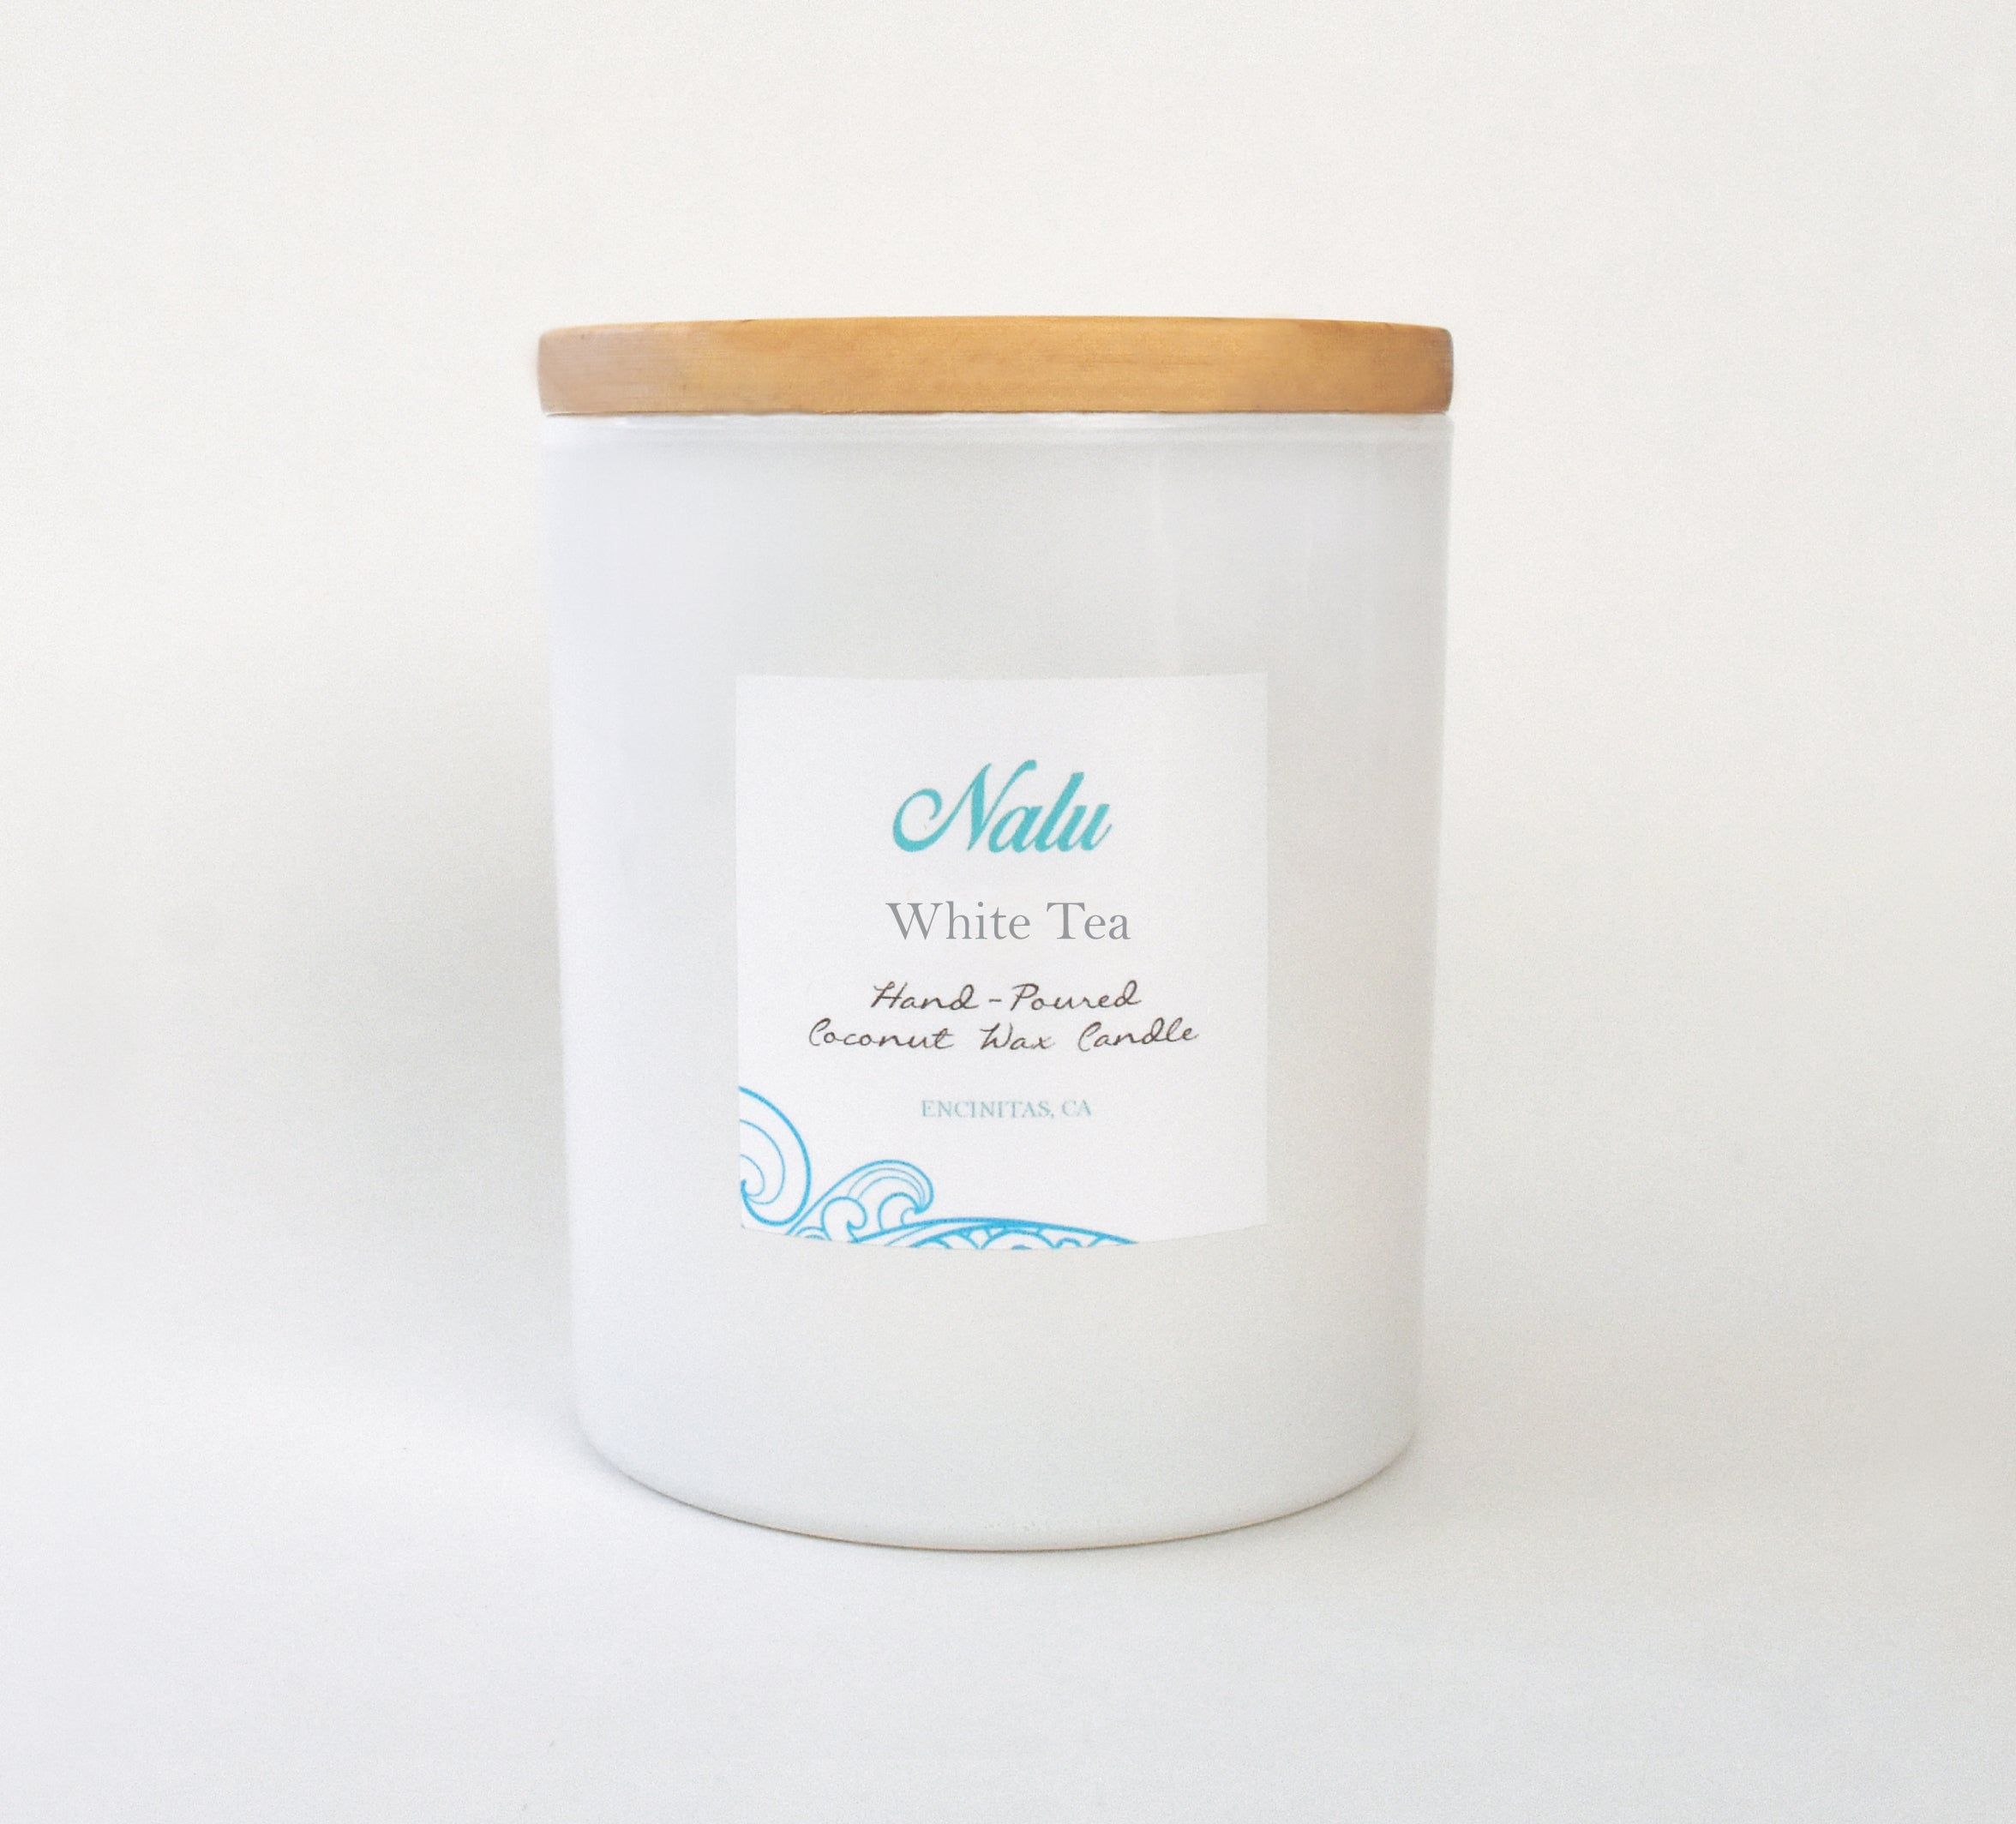 White Tea 10 oz. Candle